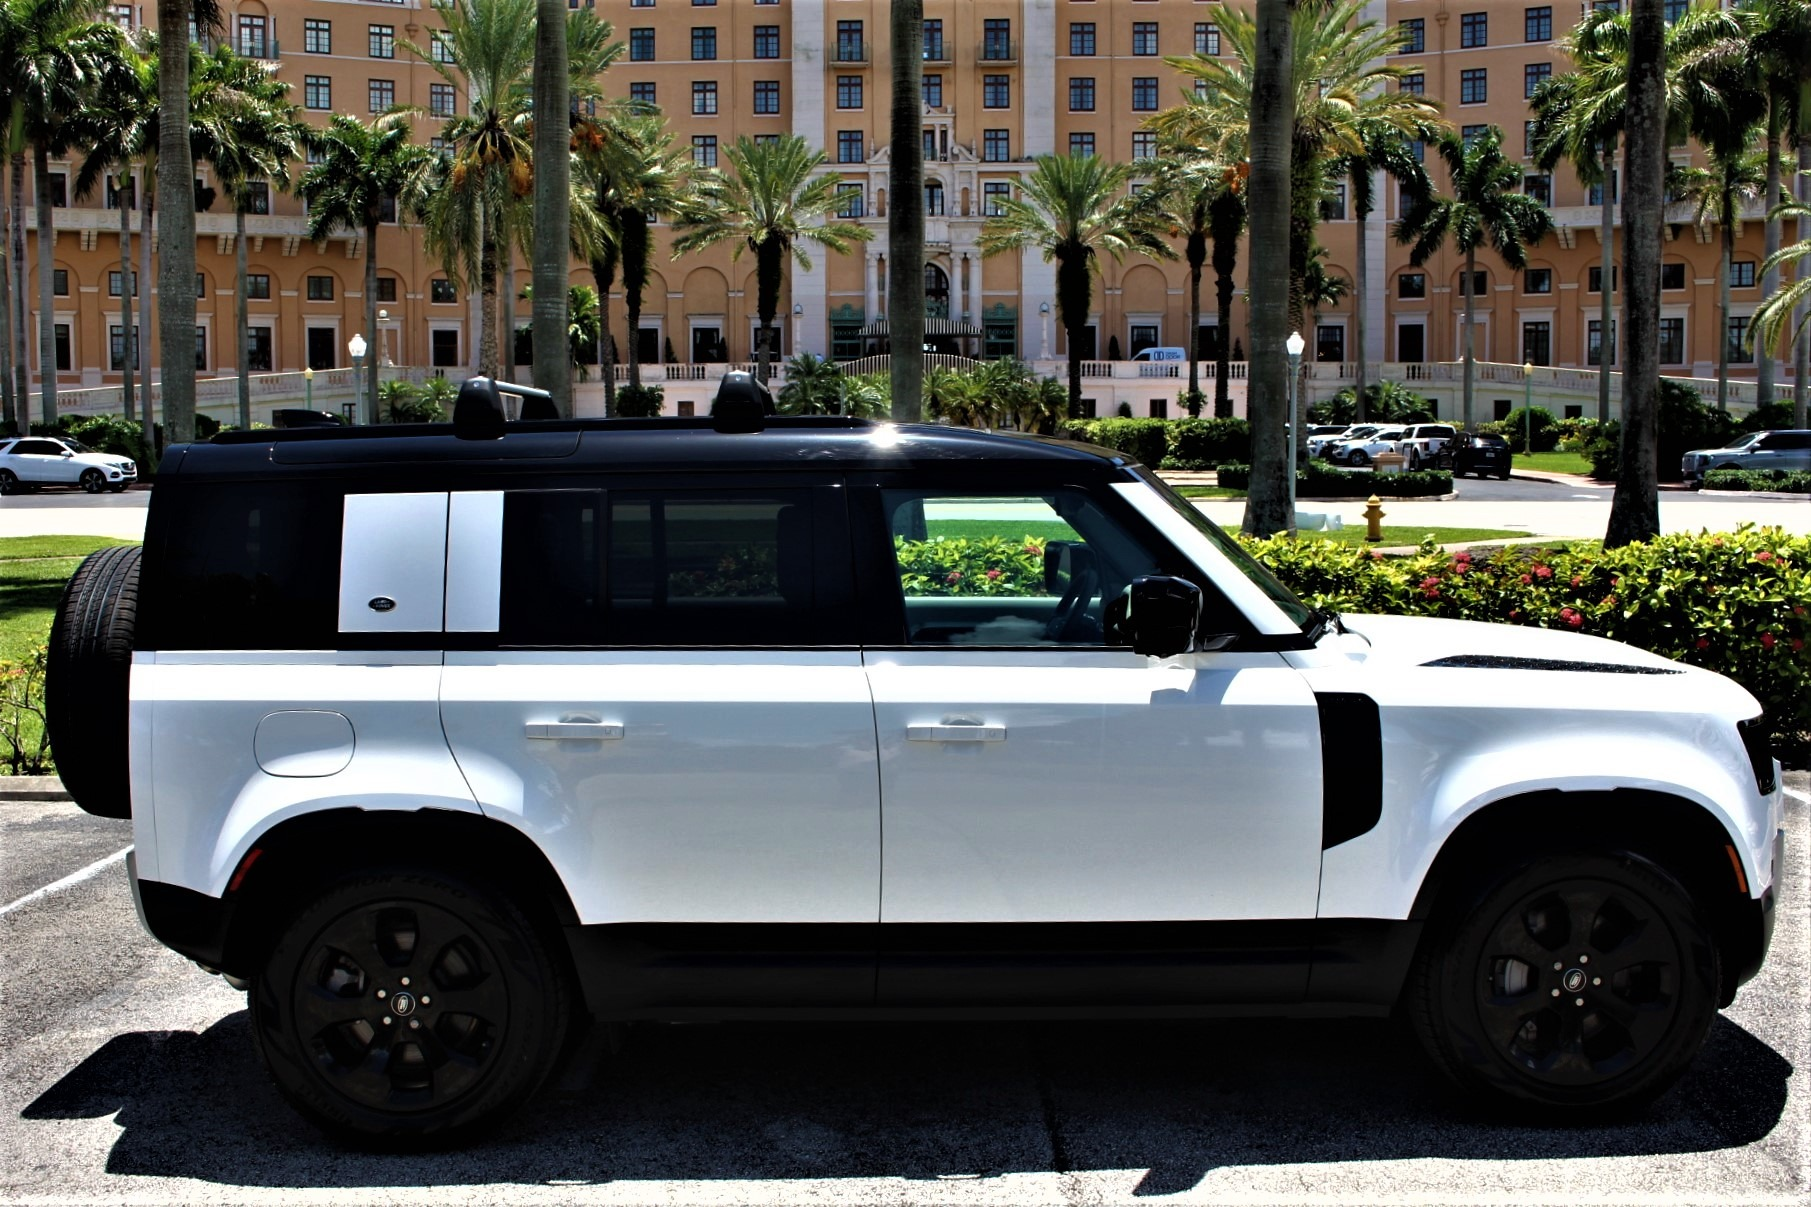 Used 2020 Land Rover Defender 110 HSE for sale Sold at The Gables Sports Cars in Miami FL 33146 3